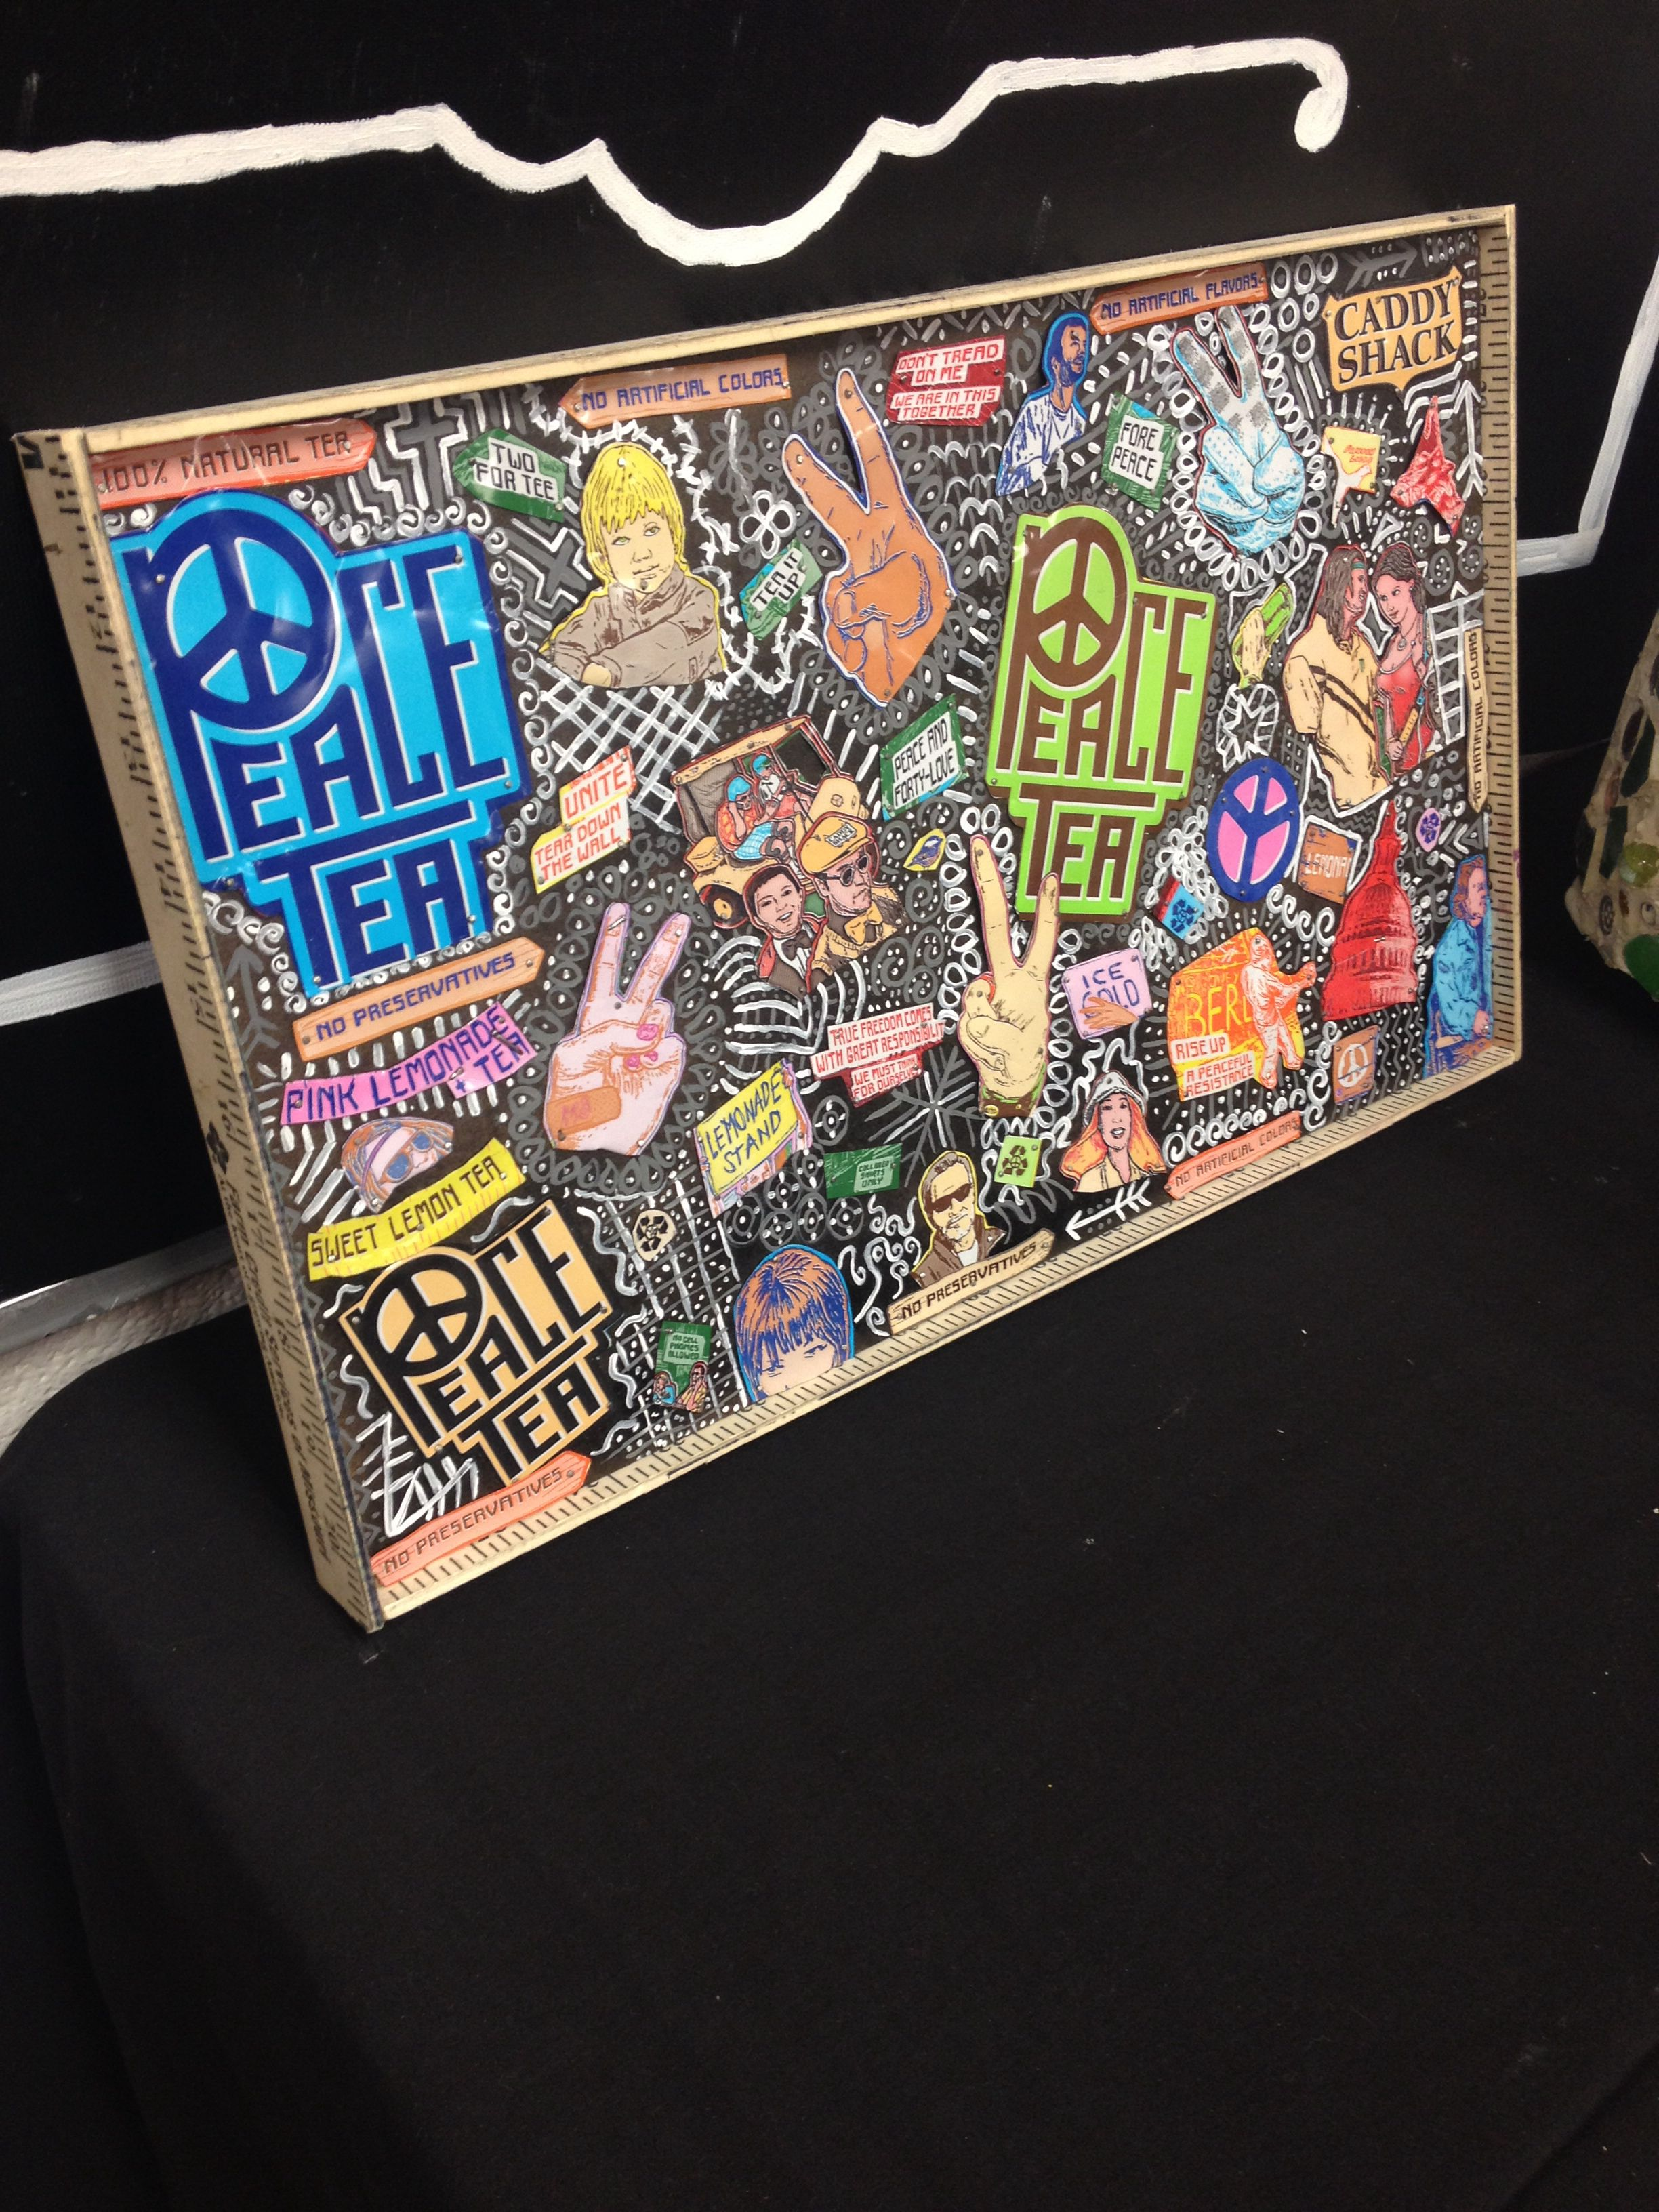 peace tea cans mosaic w doodles and a ruler frame made in art class 2014 inspiring art. Black Bedroom Furniture Sets. Home Design Ideas